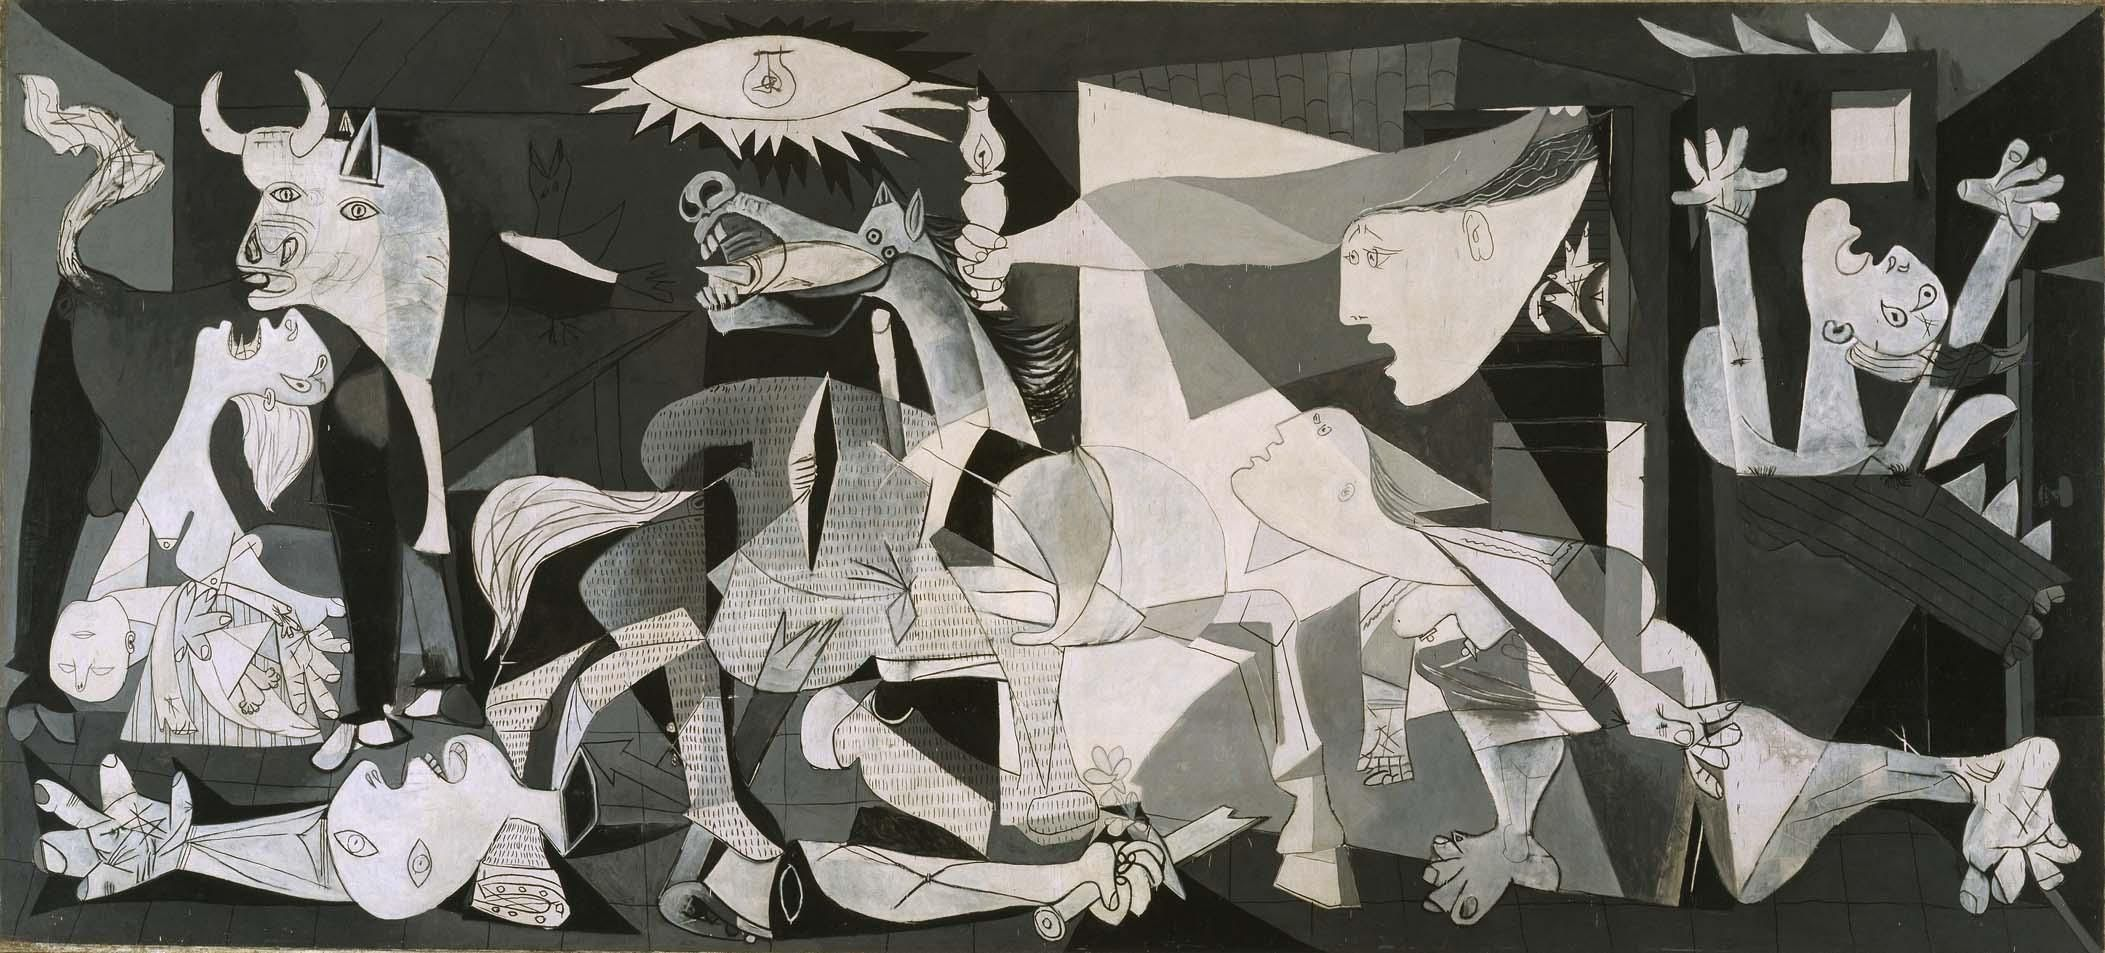 Museos 5 Guernica Picasso